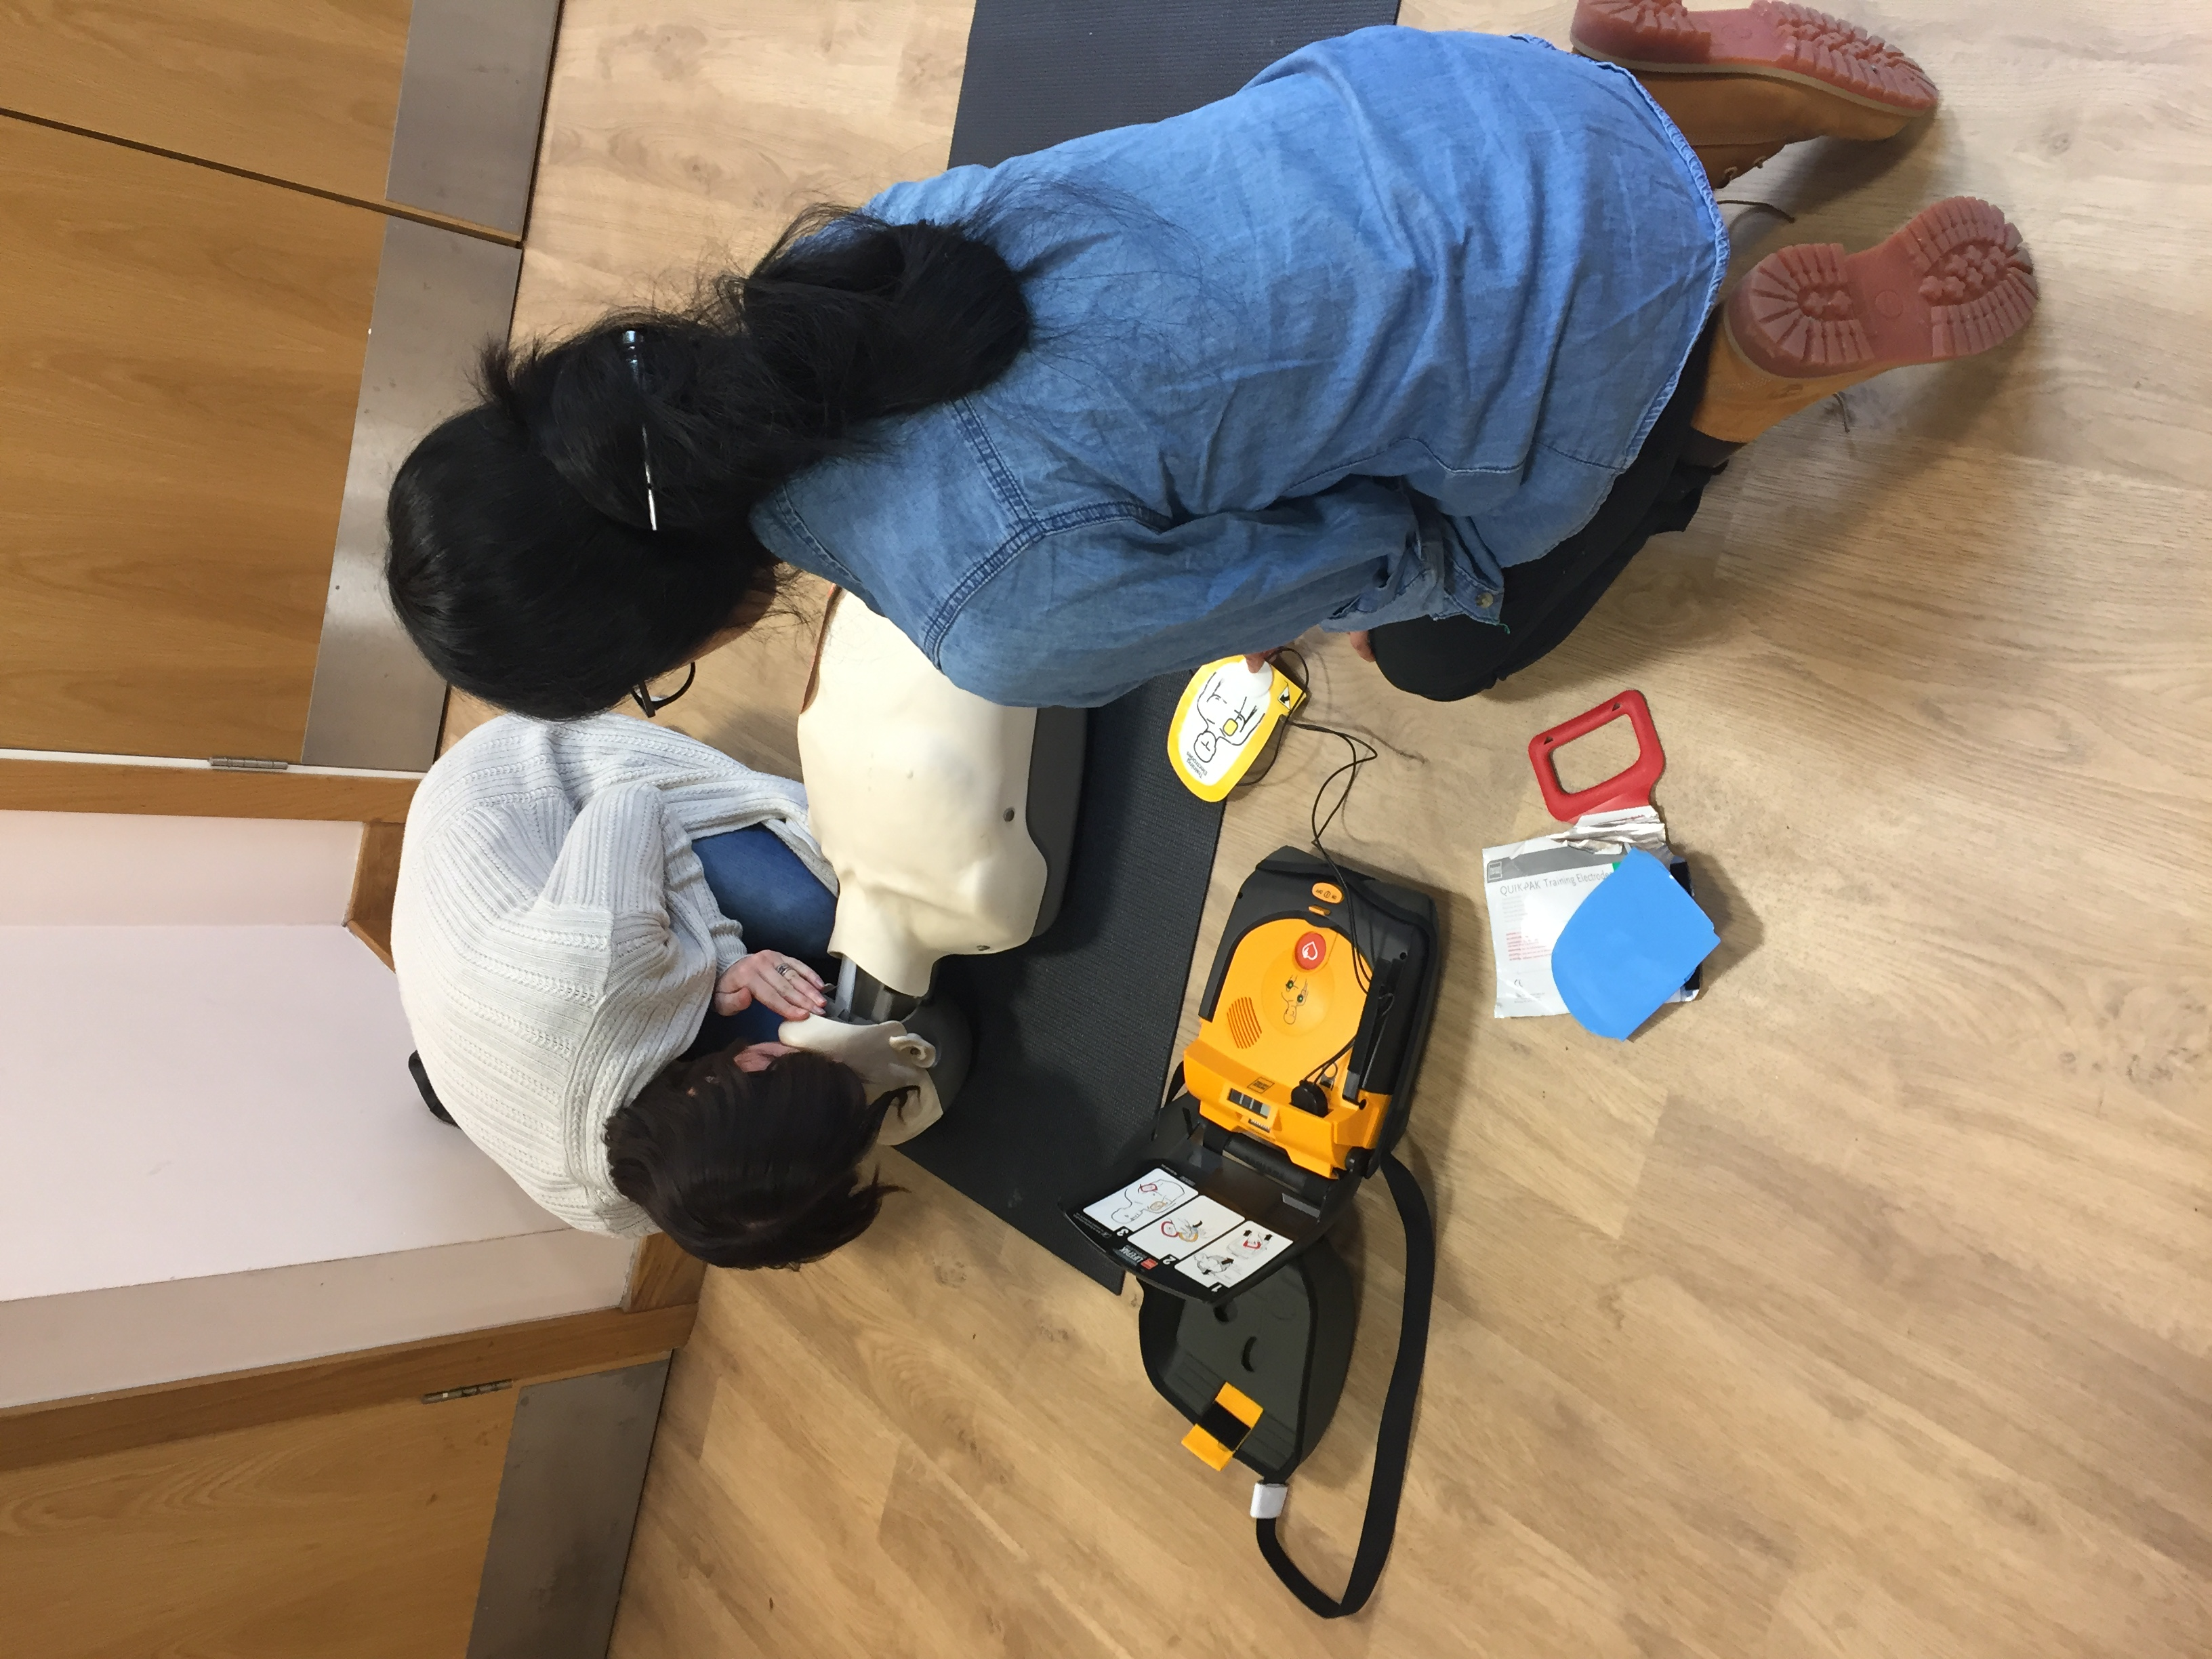 BLS and AED training